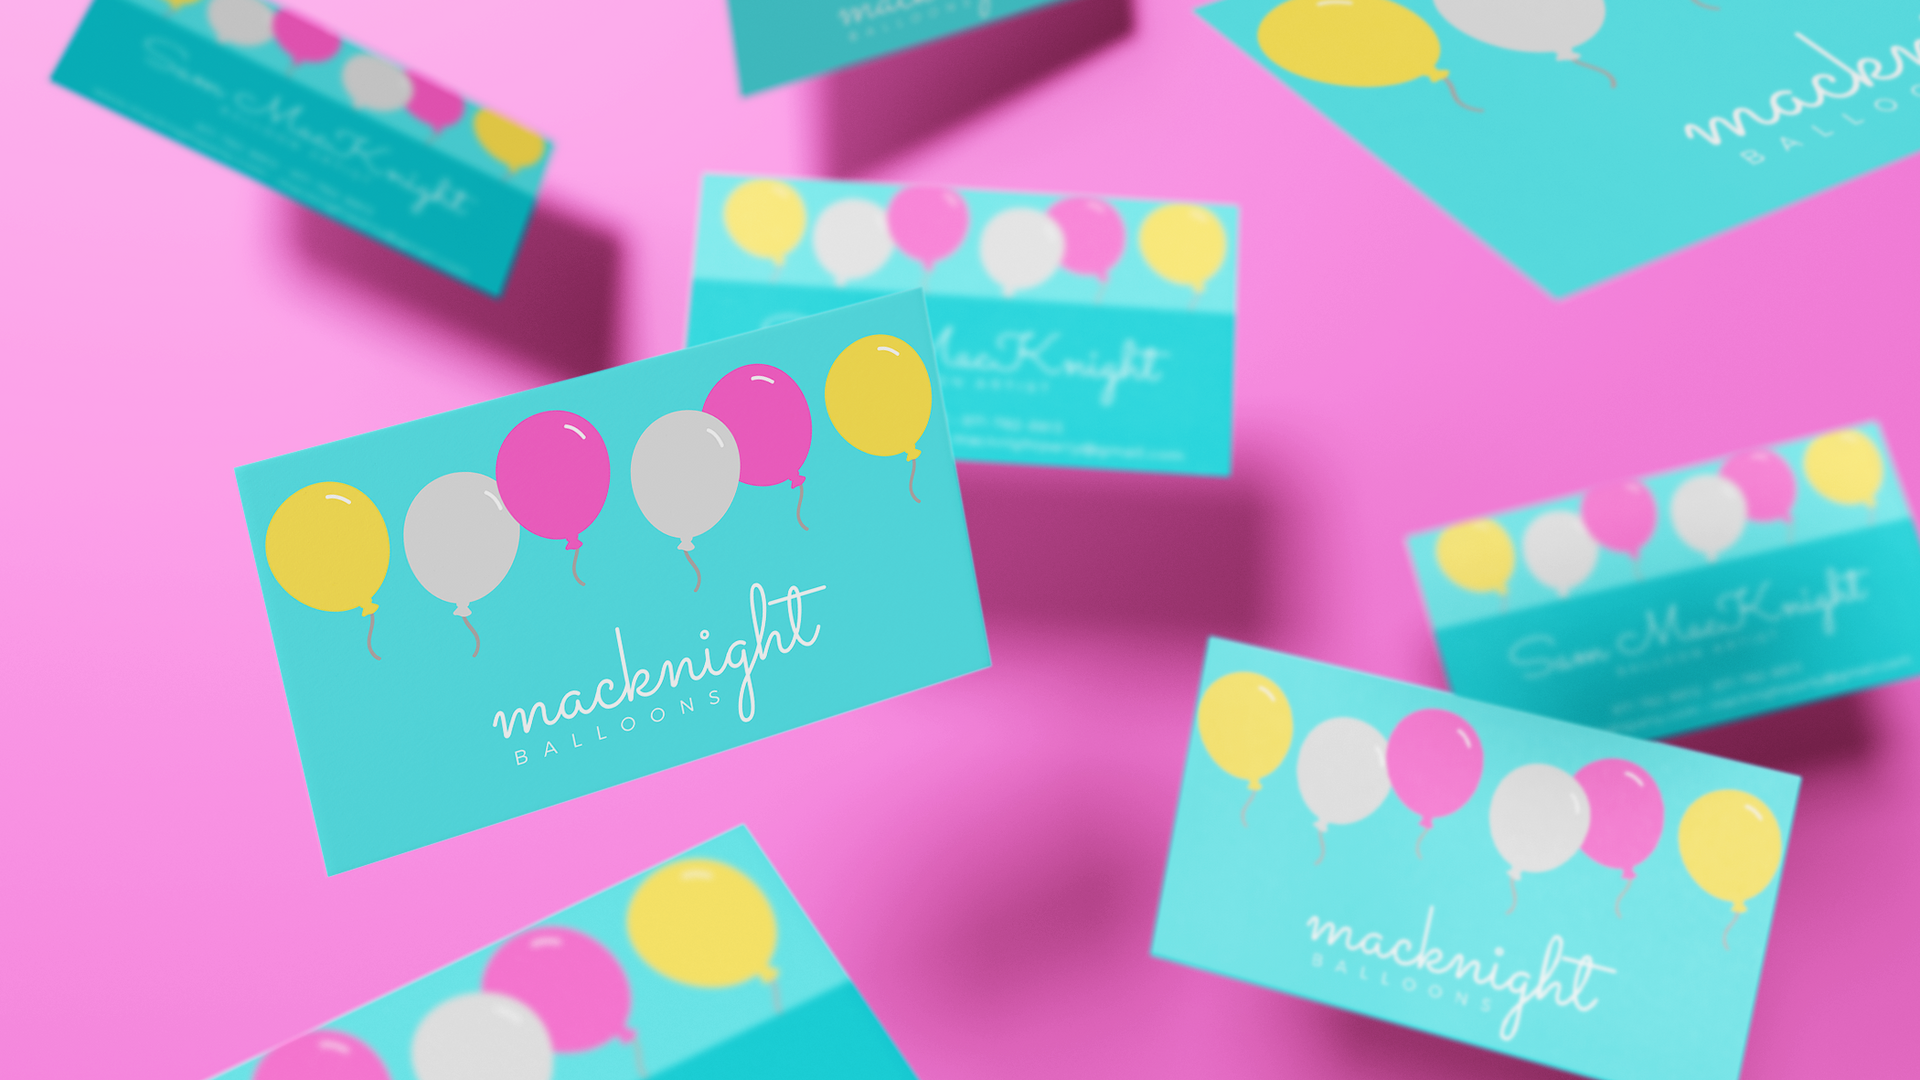 MacKnight Balloons Business Card